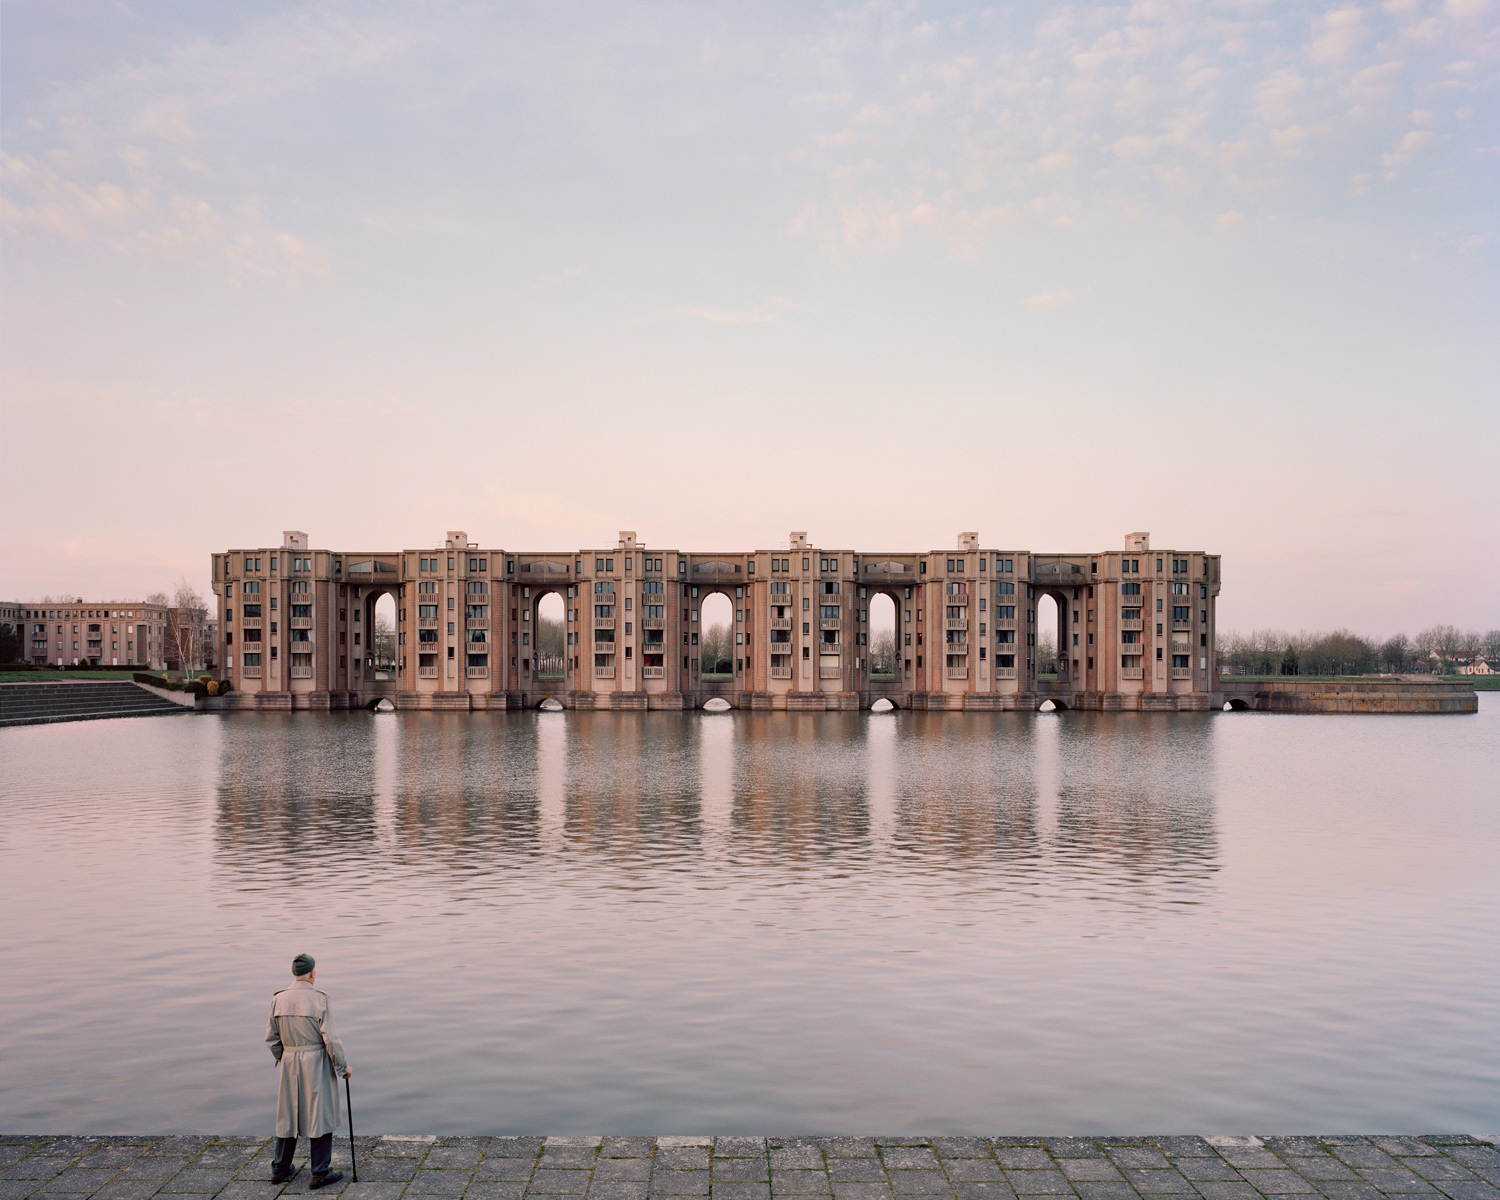 """Inside the Real-Life """"Hunger Games"""" City: A Decaying Parisian Utopia"""